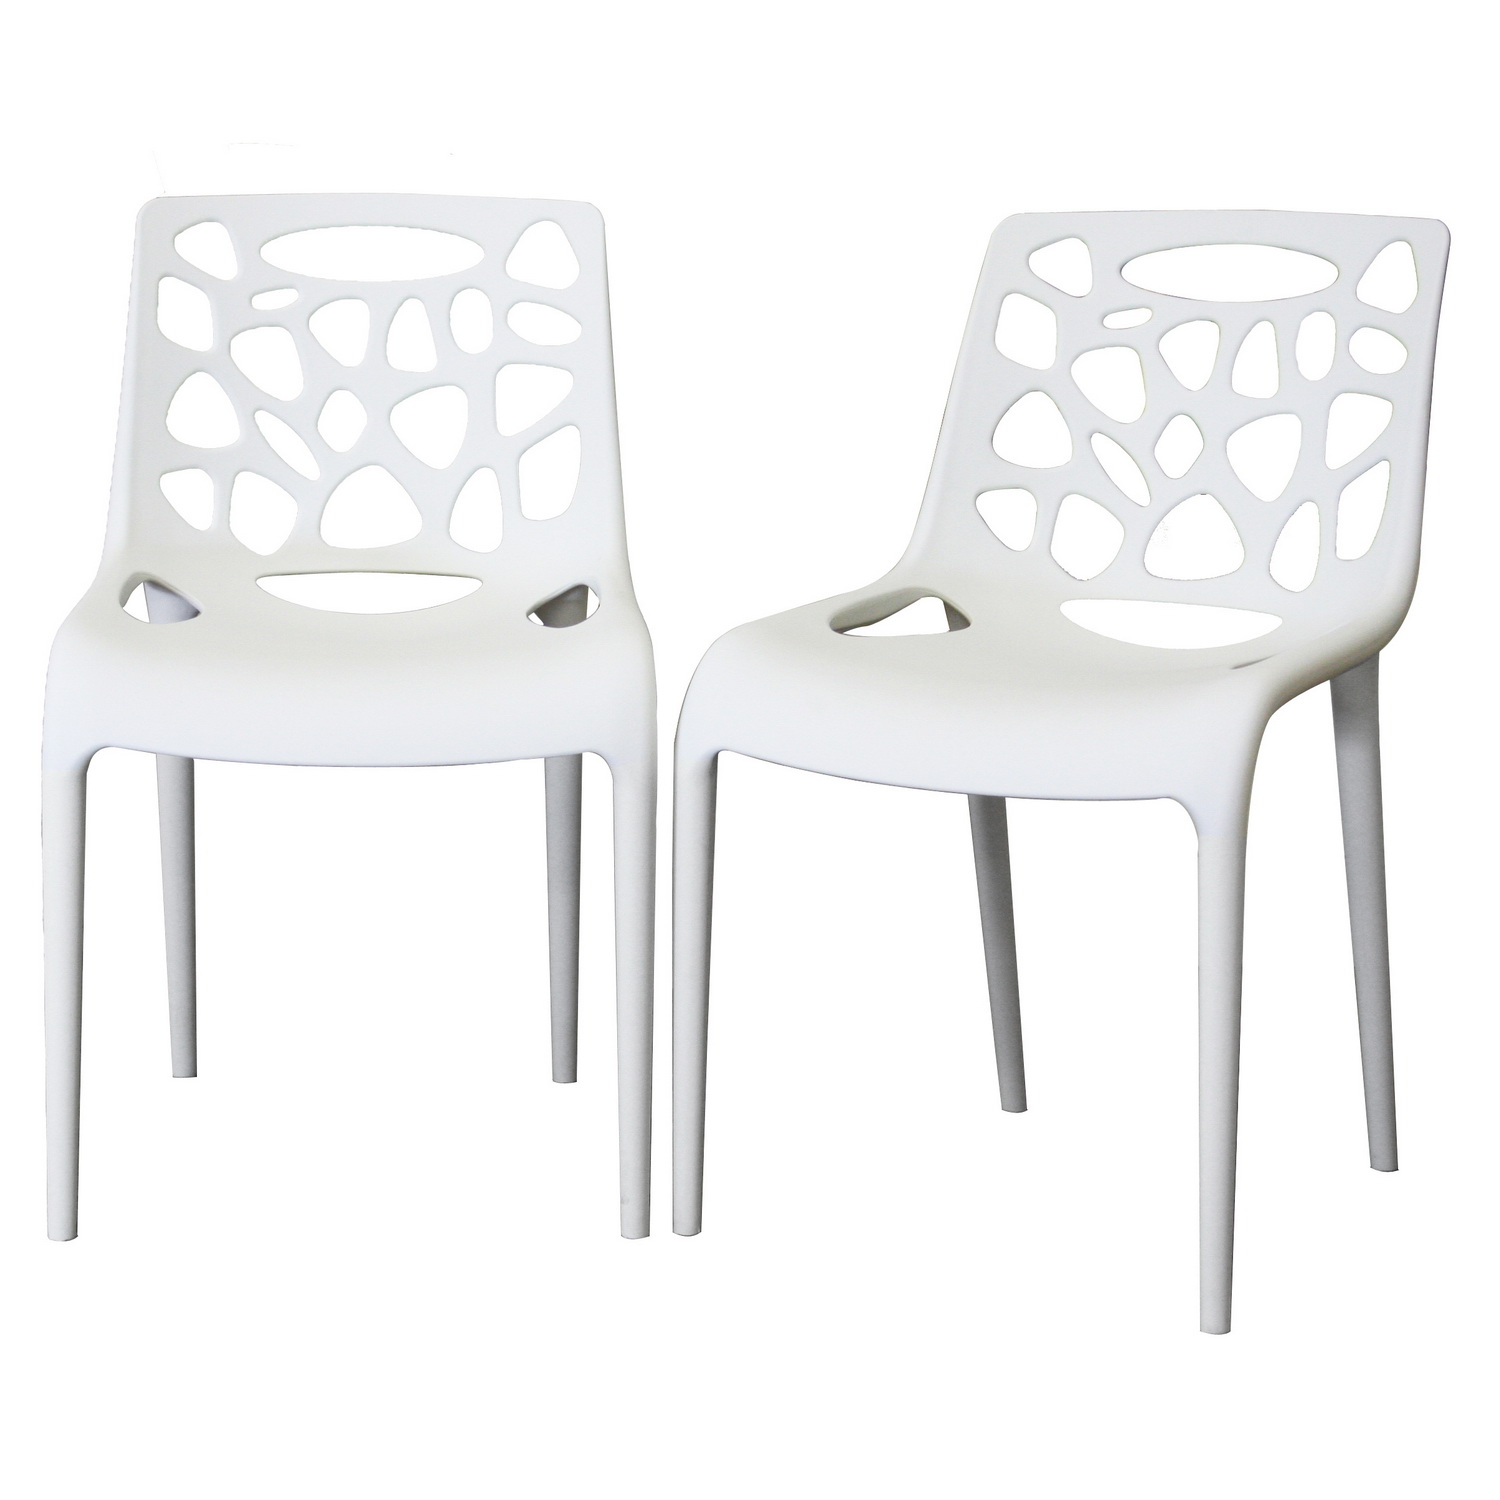 designer plastic chairs nz eames replica dsw dining chair white  - white modern dining chair chair pads cushions design